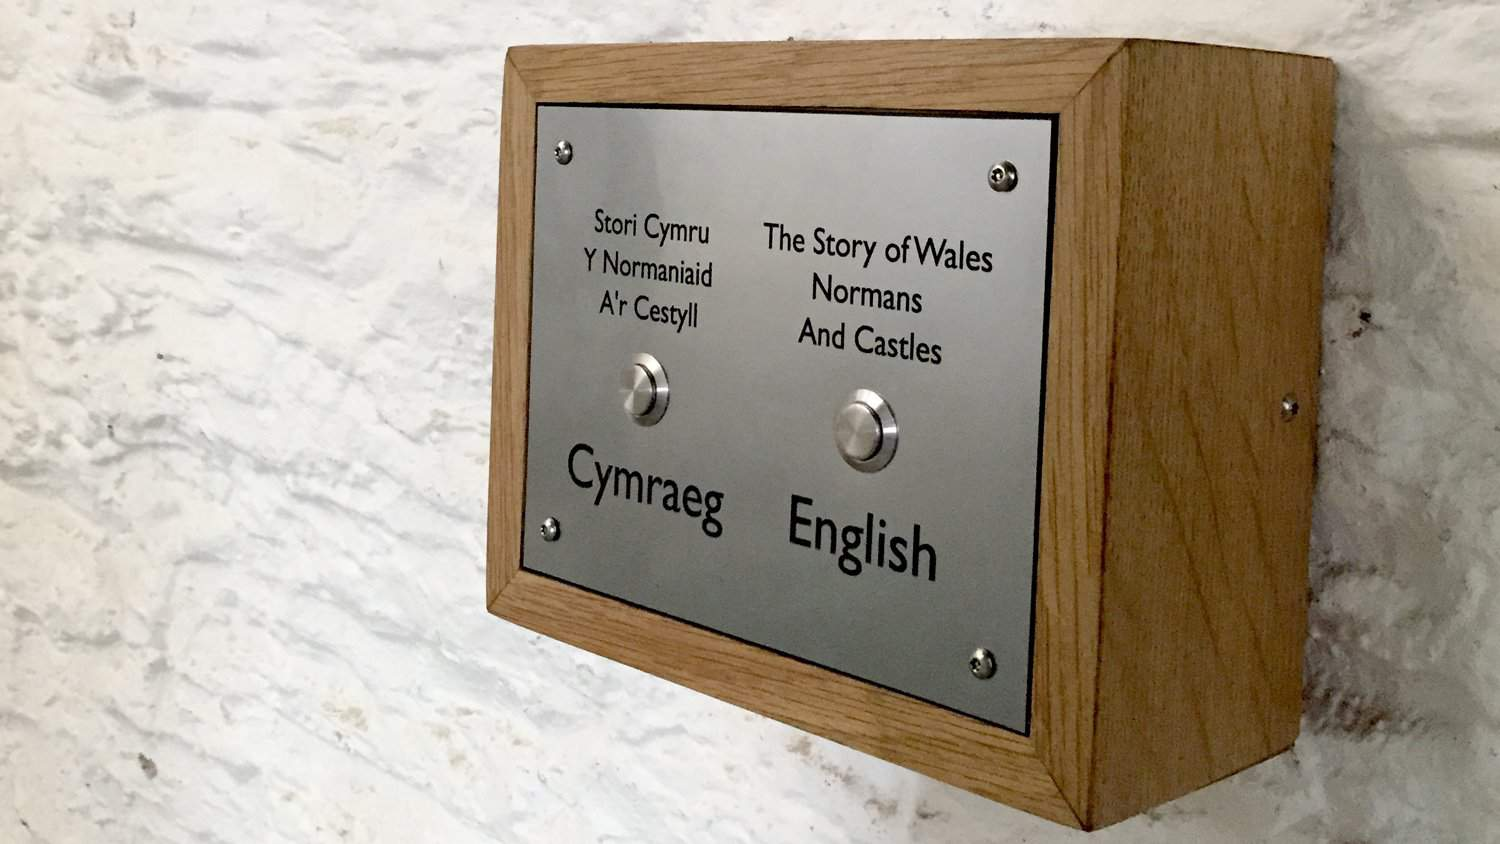 Bespoke Buton Activated Box by Blackbox-av for Caerphilly Castle